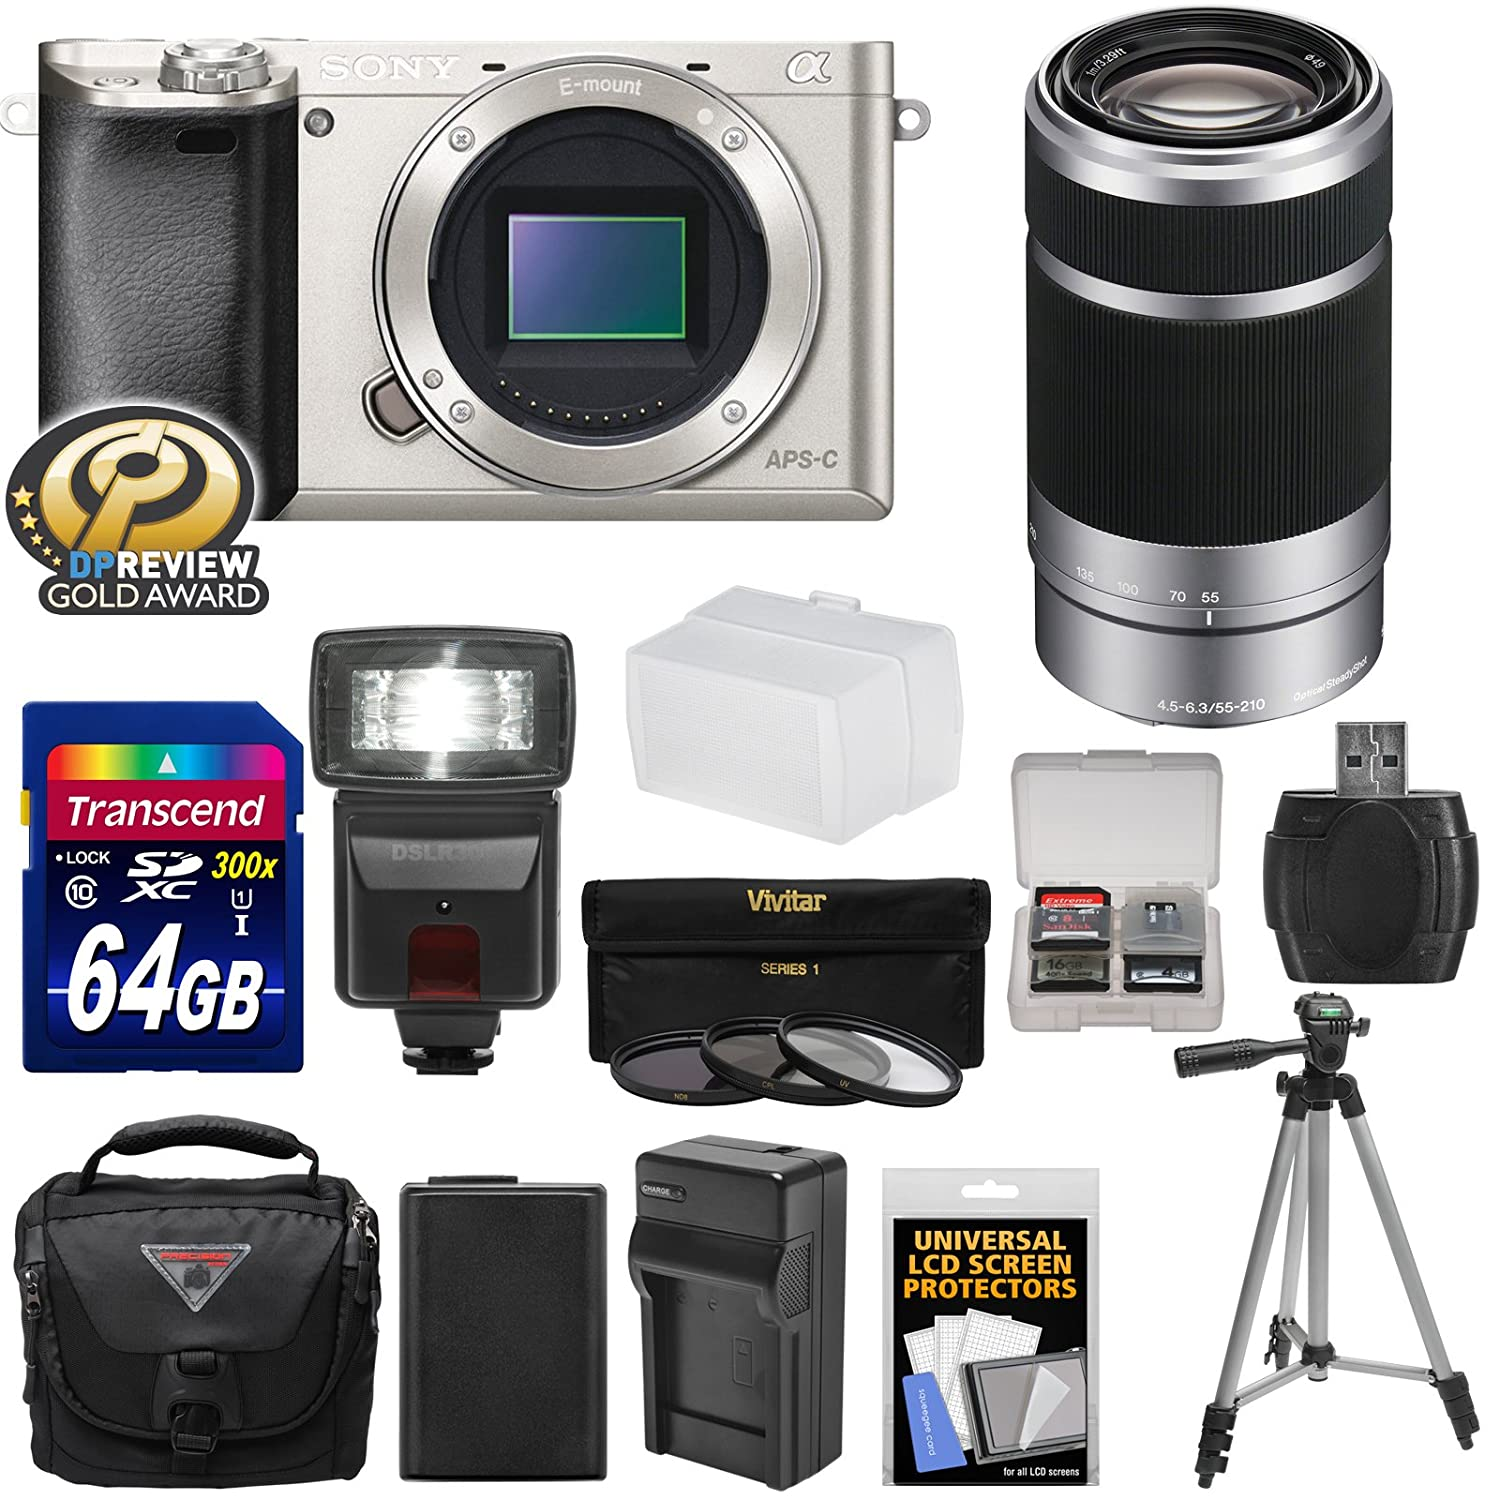 Sony Alpha A6000 Wi-Fi Digital Camera Body (Silver) with 55-210mm Lens + 64GB Card + Flash + Case + Tripod + Battery & Charger + Kit